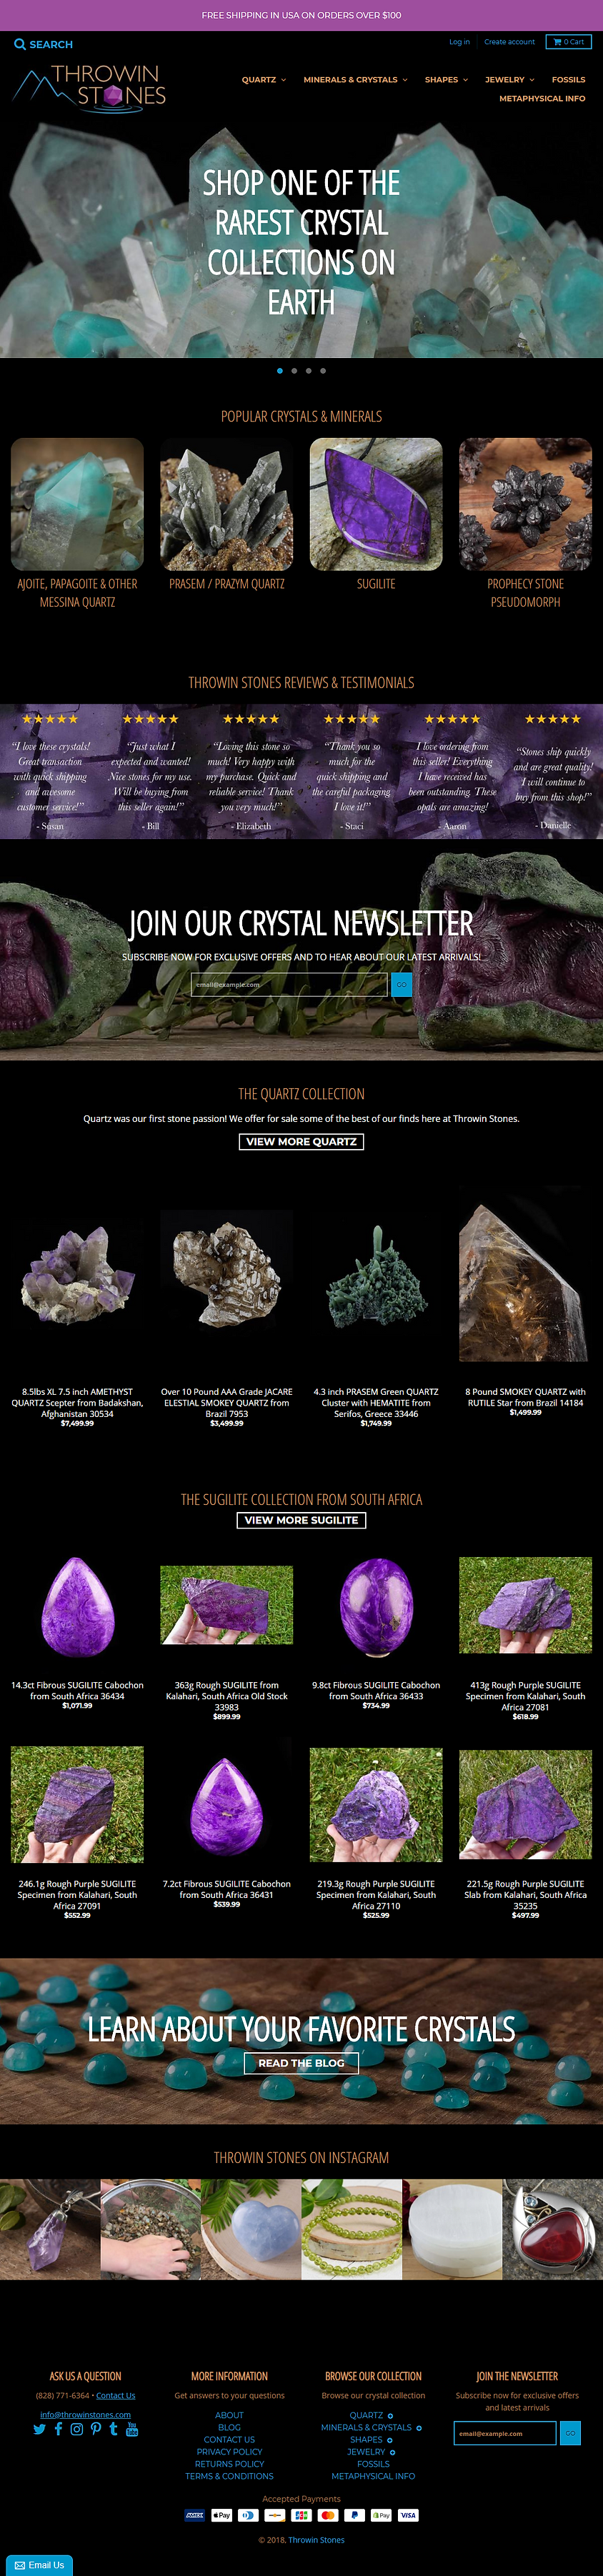 Throwin Stones Landing Page - Ecommerce